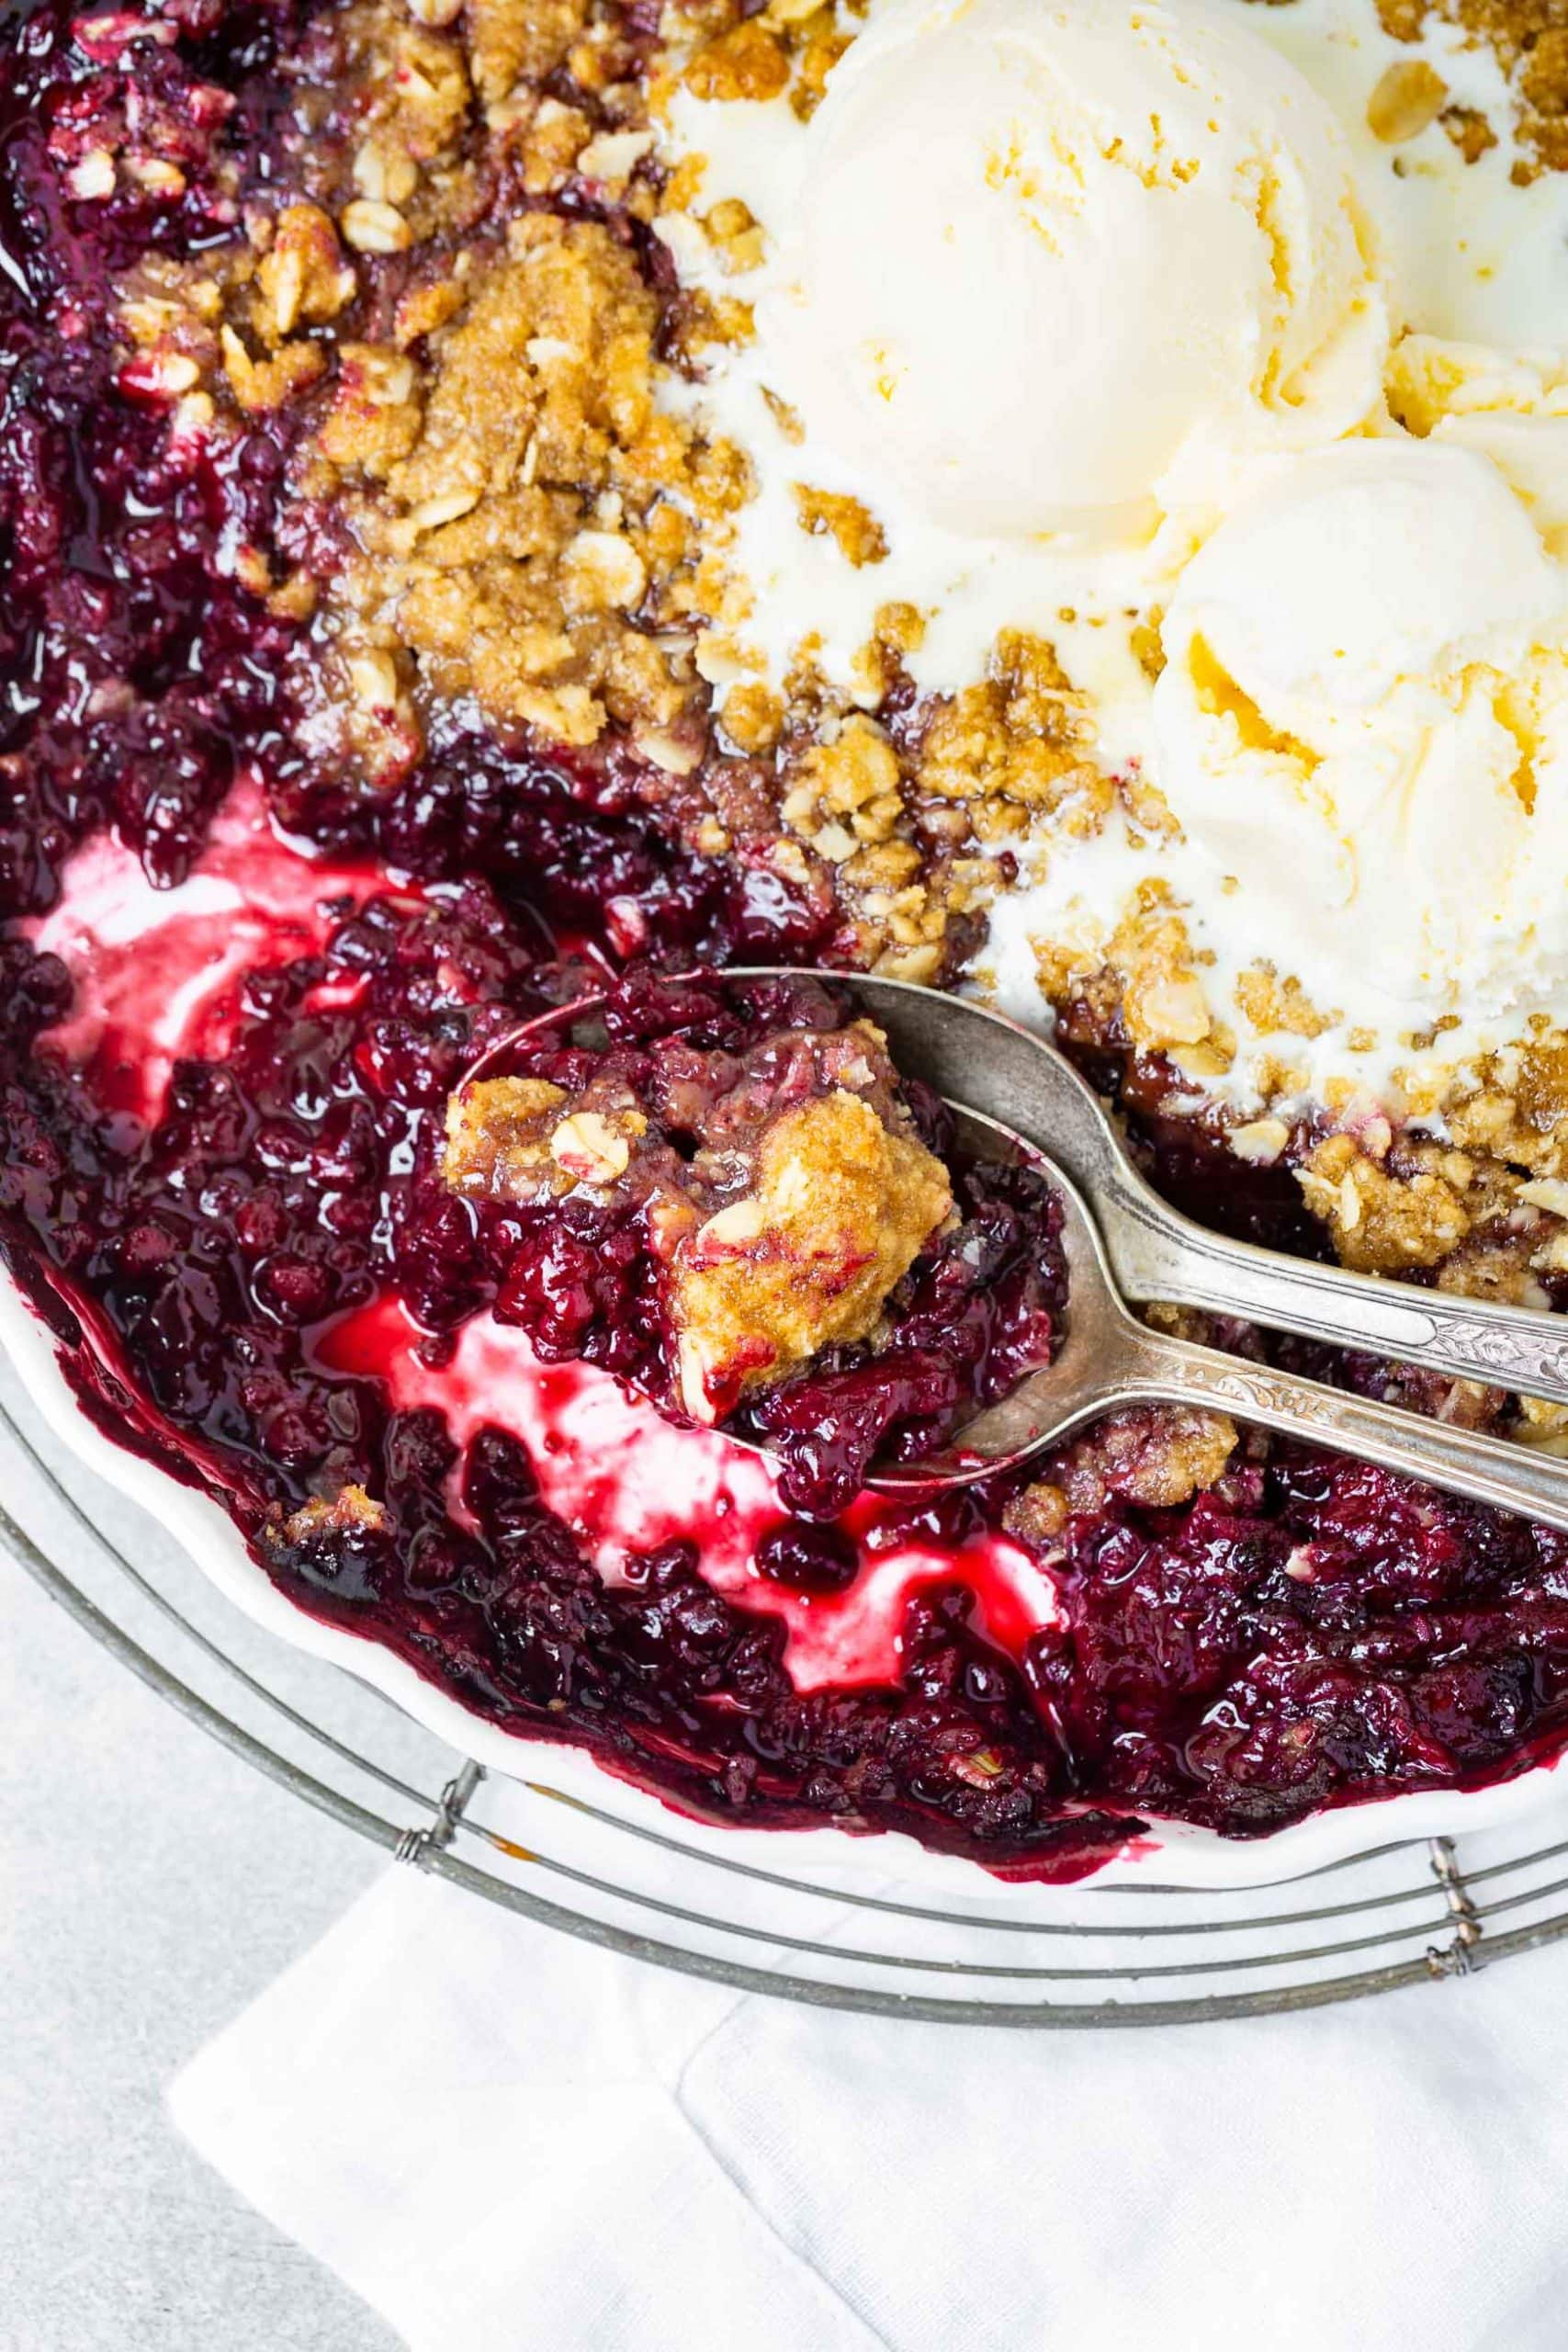 a photo of a pan of marionberry crisp that has been served out of. there are scoops of vanilla ice cream on top that are melting into the crisp.